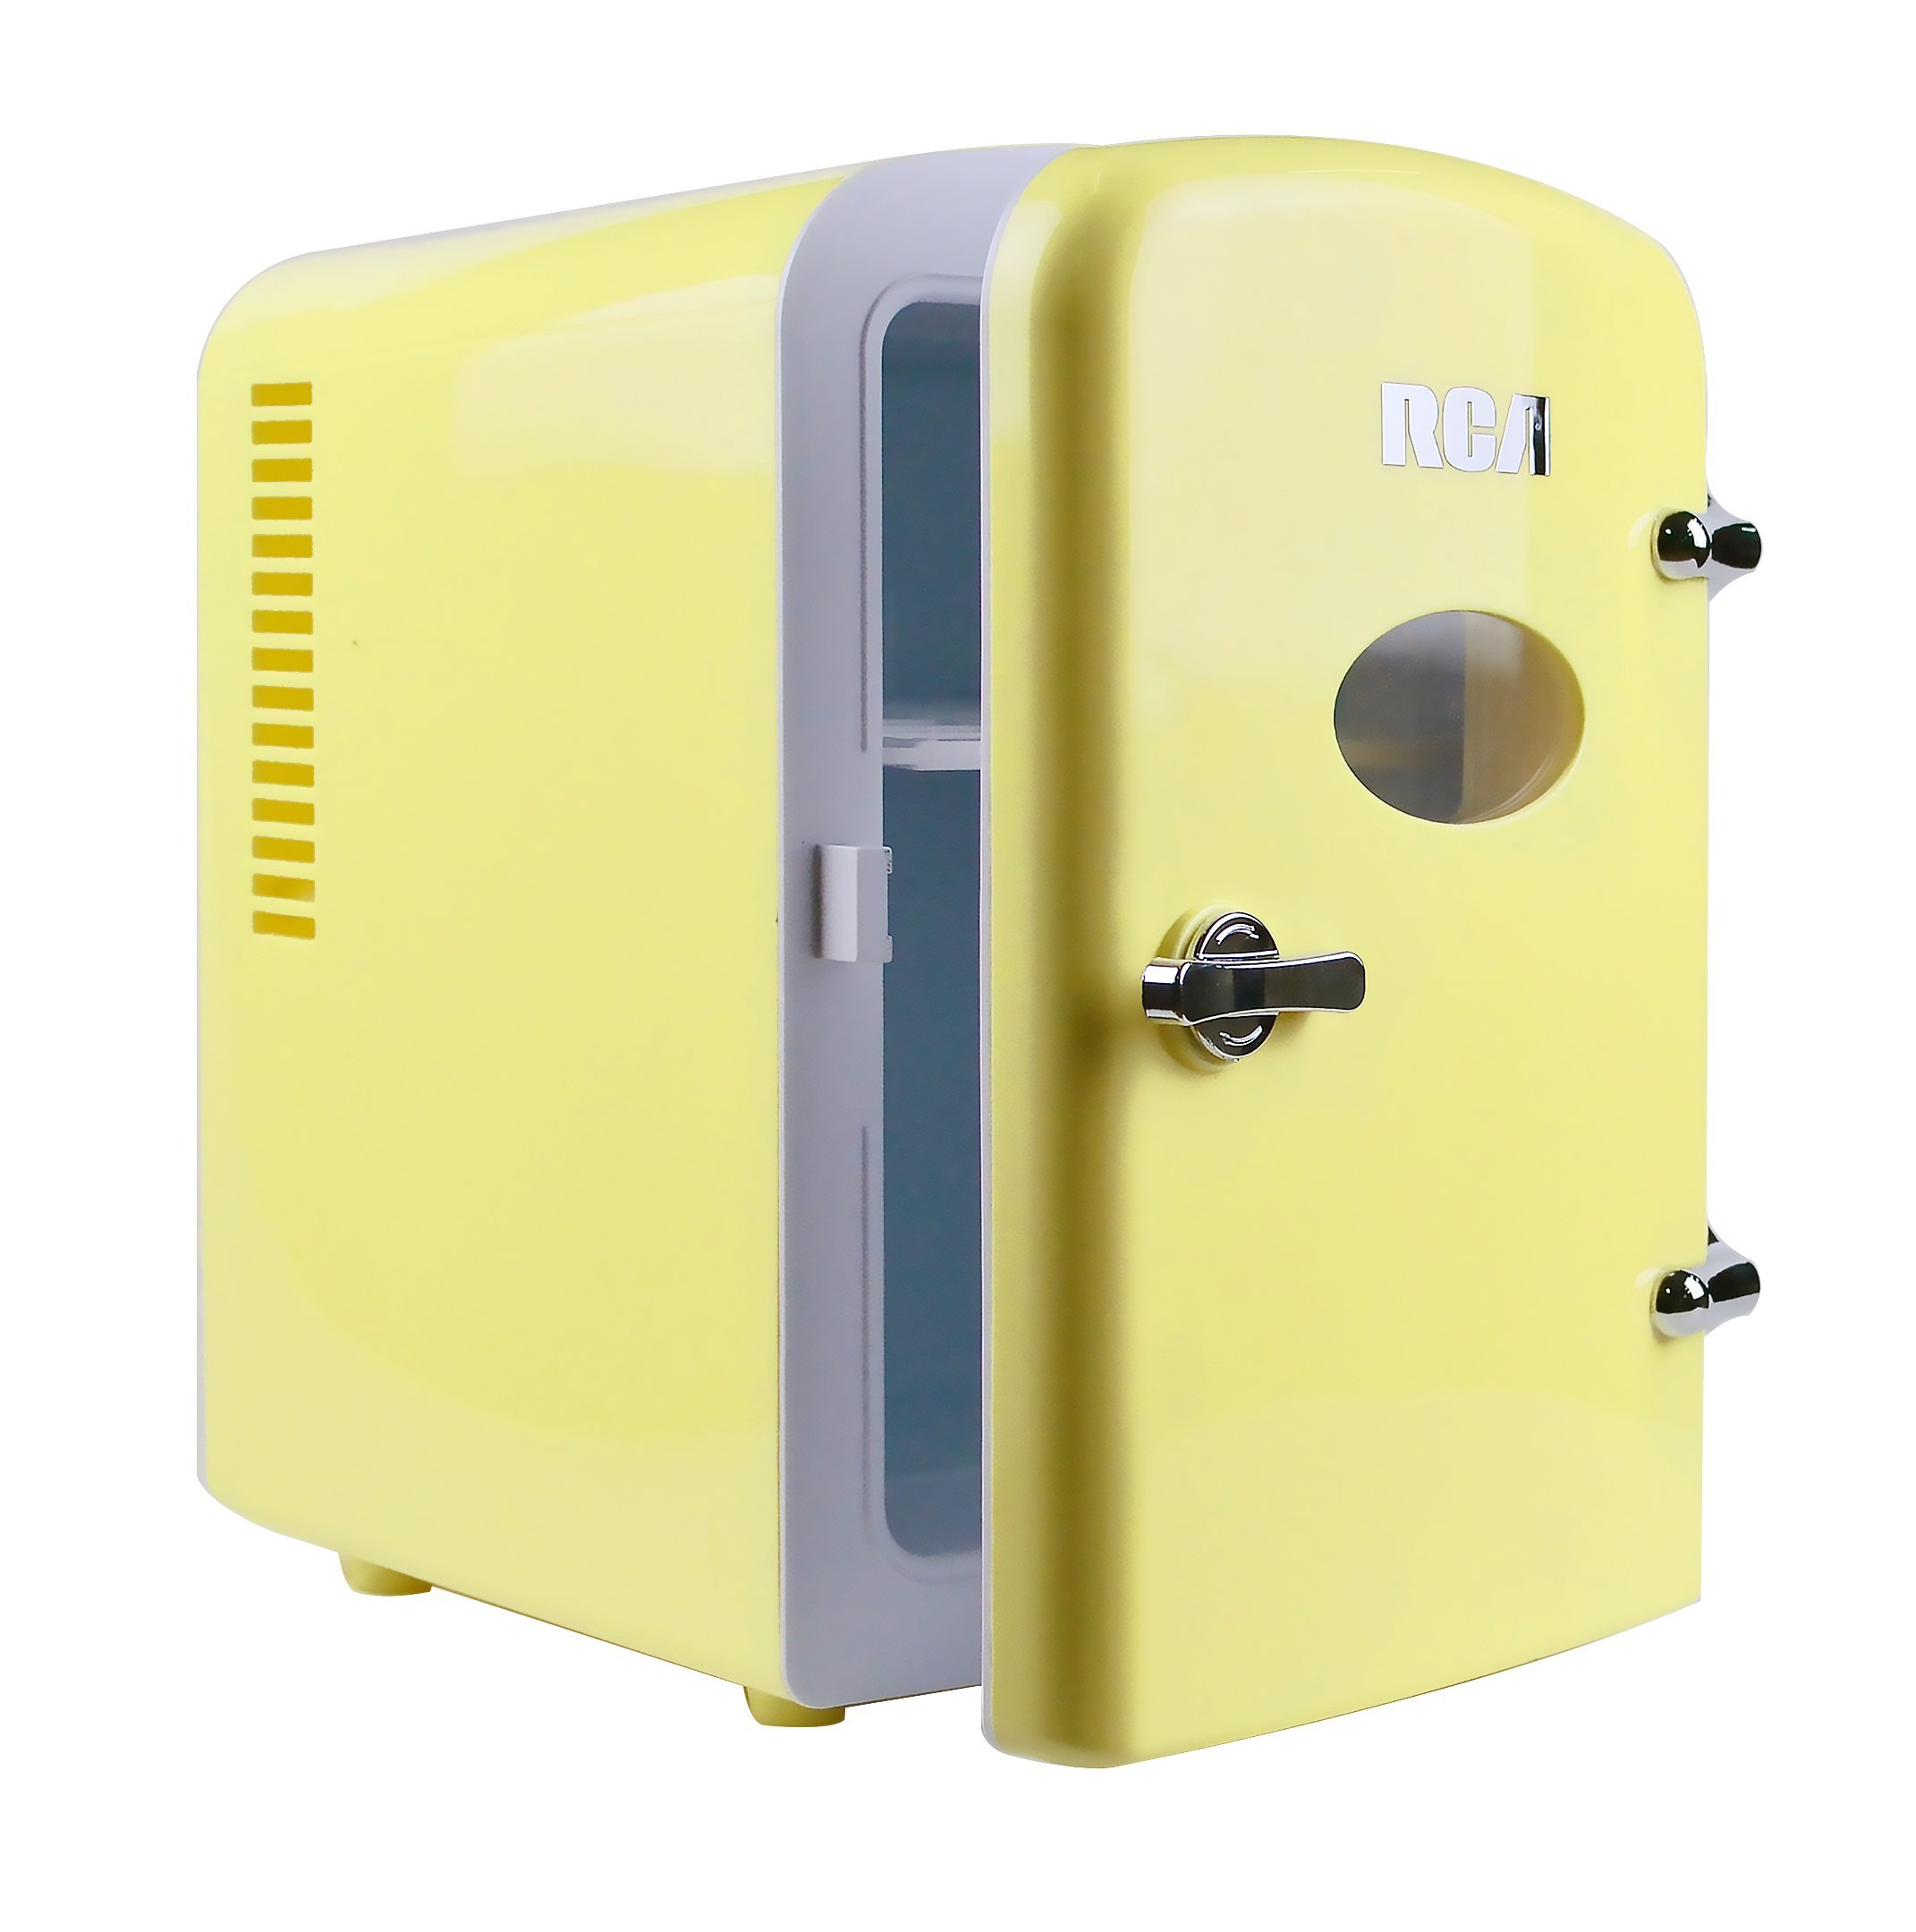 RCA Mini Compact Beverage Refrigerator, Yellow, Great for keeping office lunch and a couple drinks cool! by RCA (Image #2)